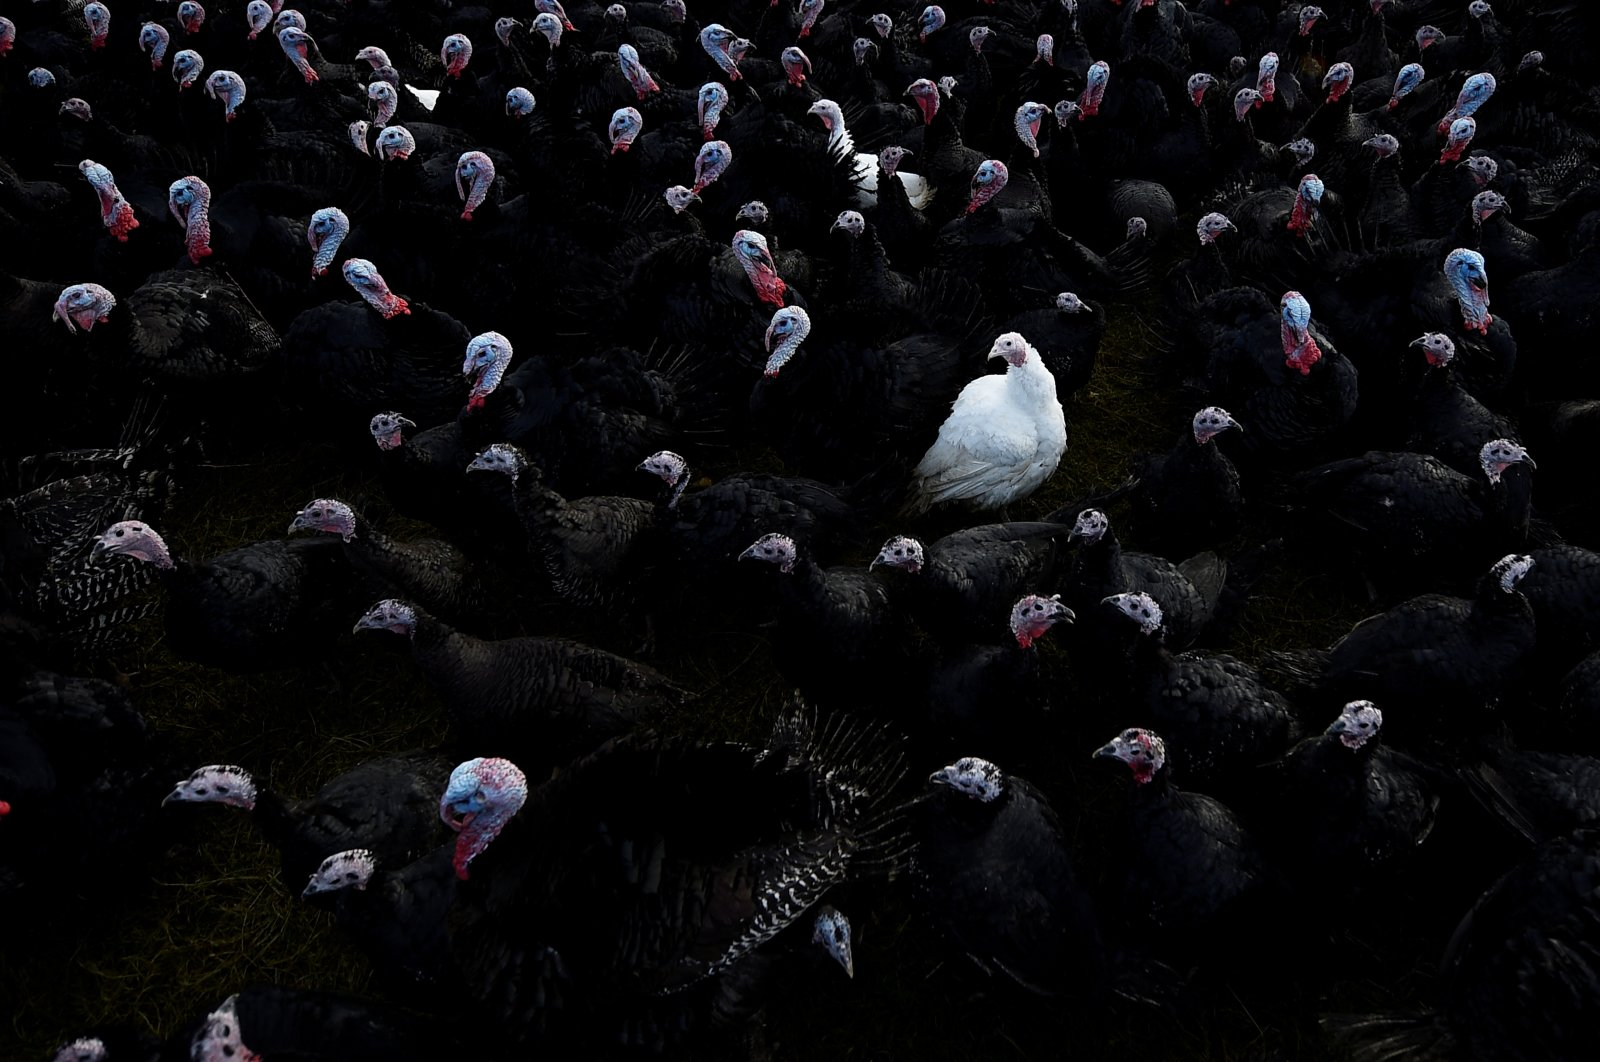 A white bronze turkey is seen amongst Norfolk black turkeys hatched in June and raised free-range for Christmas on a farm in Termonfeckin, Ireland, November 26, 2017. (REUTERS Photo)